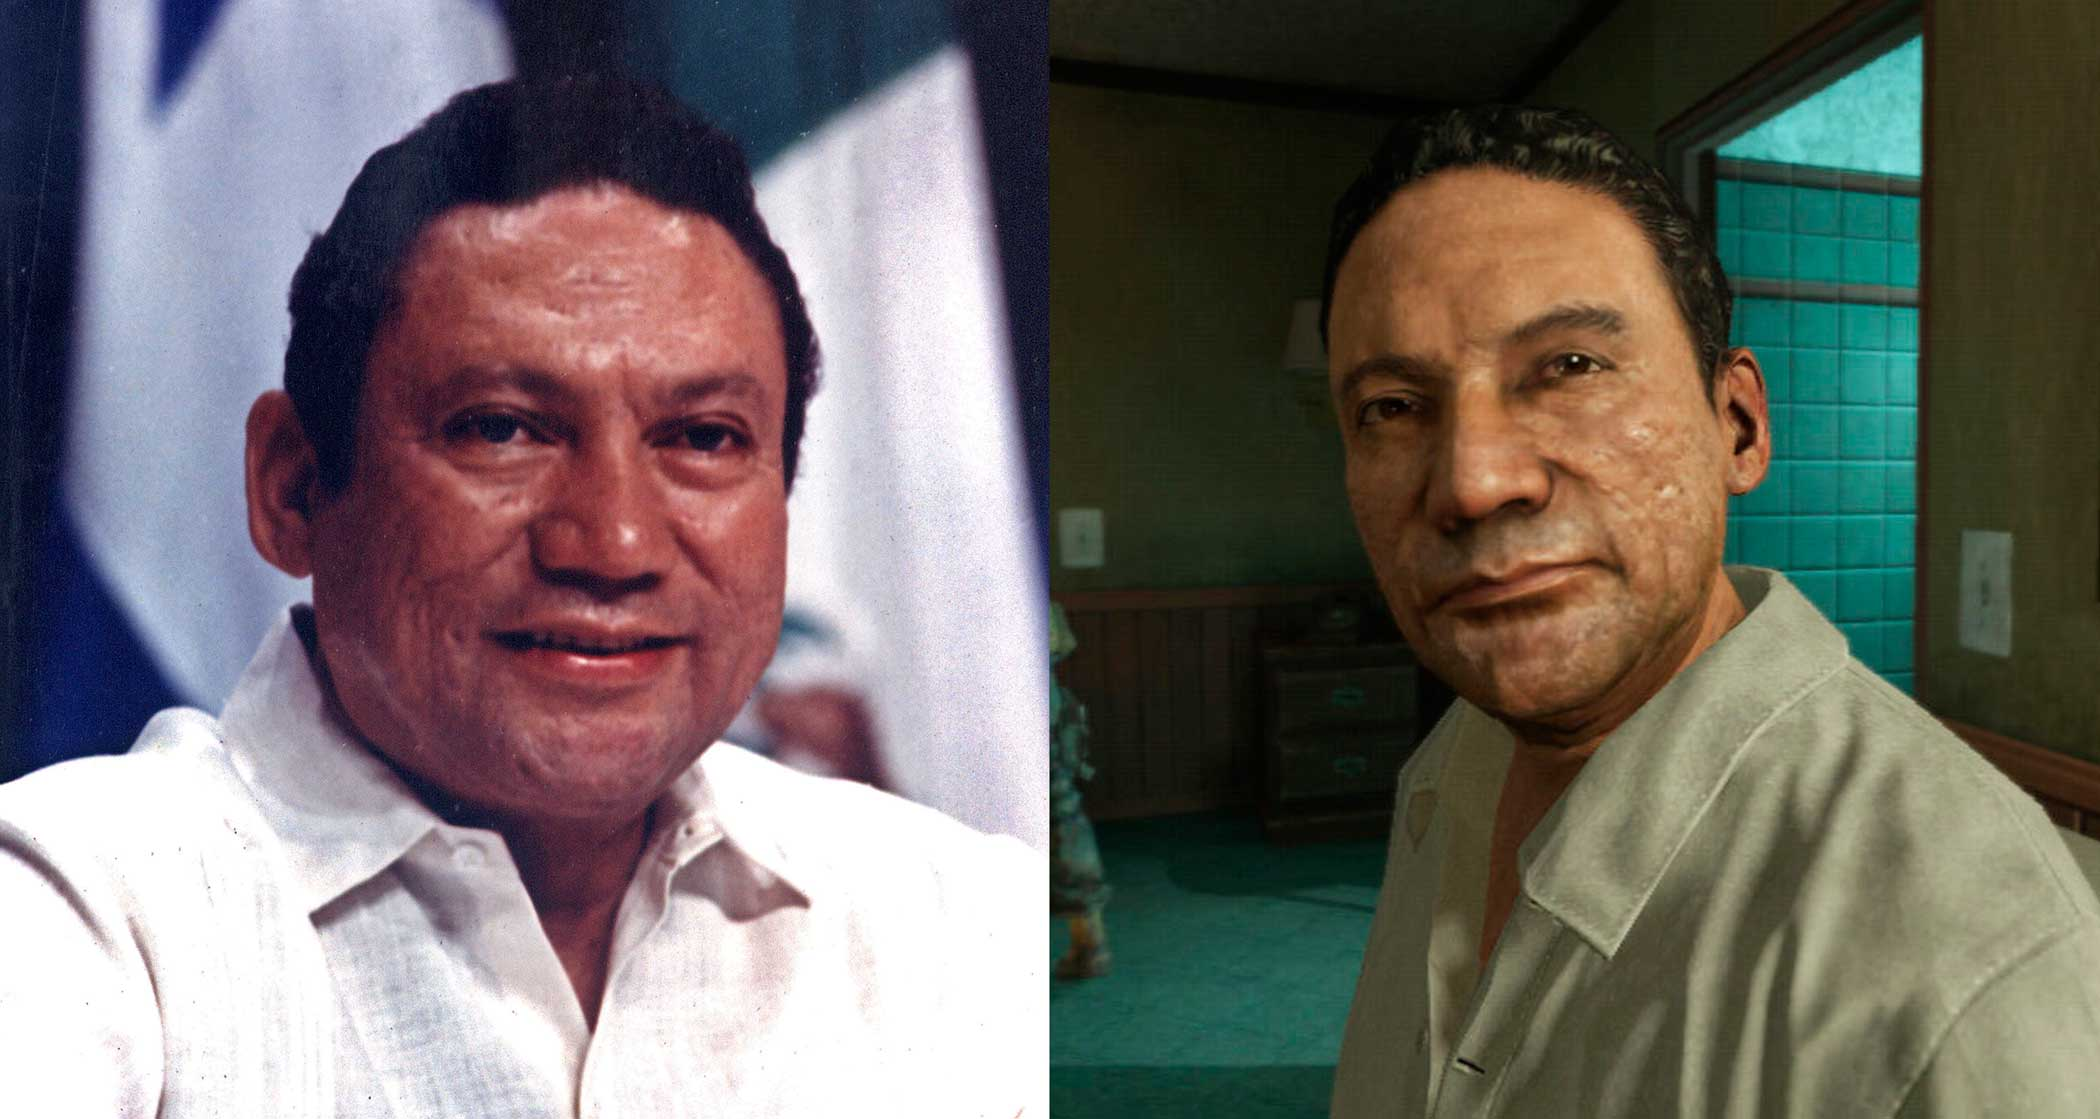 Panamanian strongman Manuel Antonio Noriega (left) sues Activision over a portrayal of him in Activision's Call of Duty: Black Ops 2 game (right)